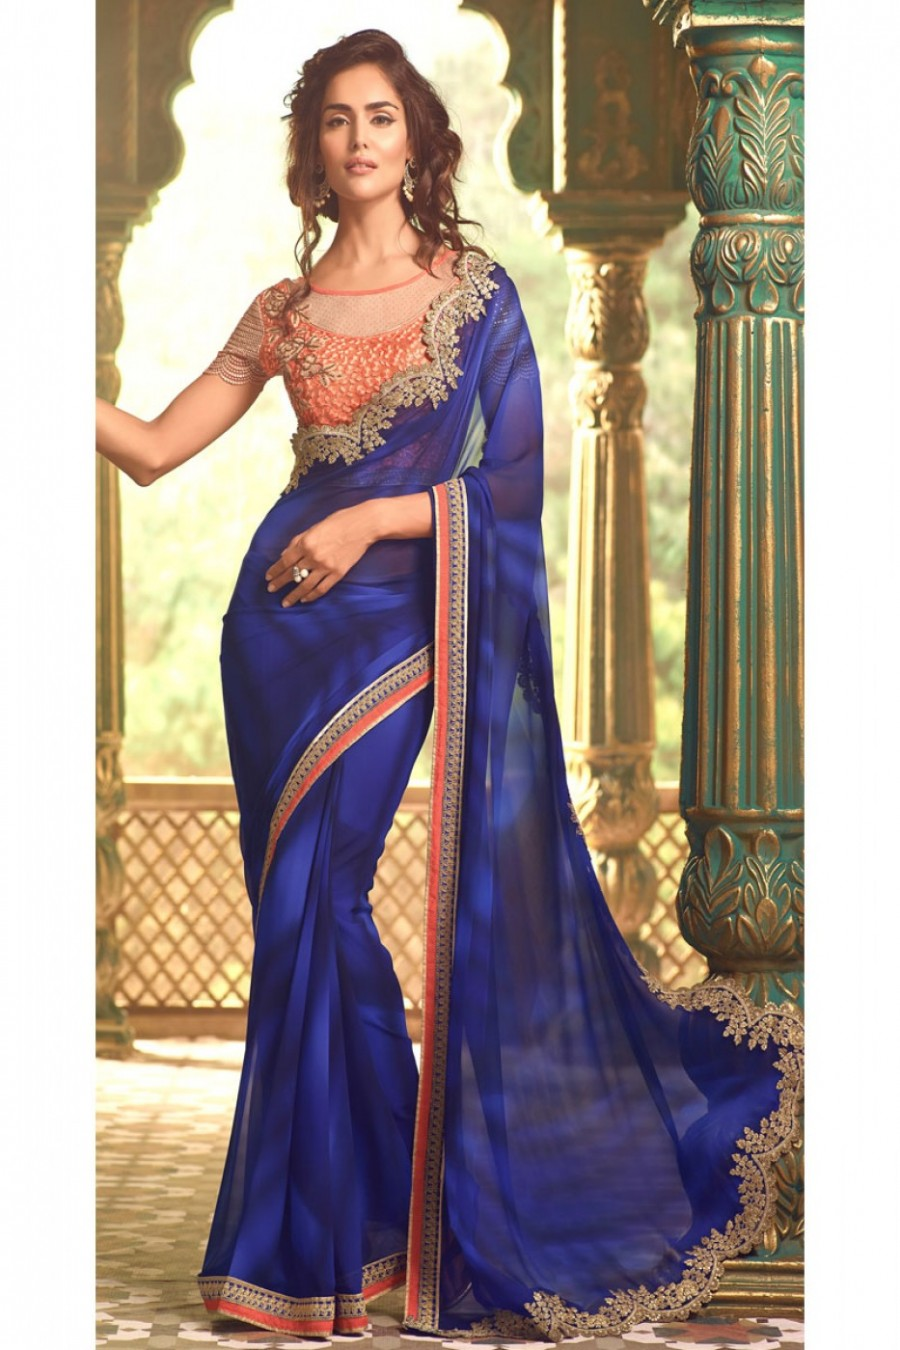 4682158b85 Buy Royal Blue and Coral Elegant Partywear Saree on Georgette Fabric with  Fancy Designer Embroidered Blouse